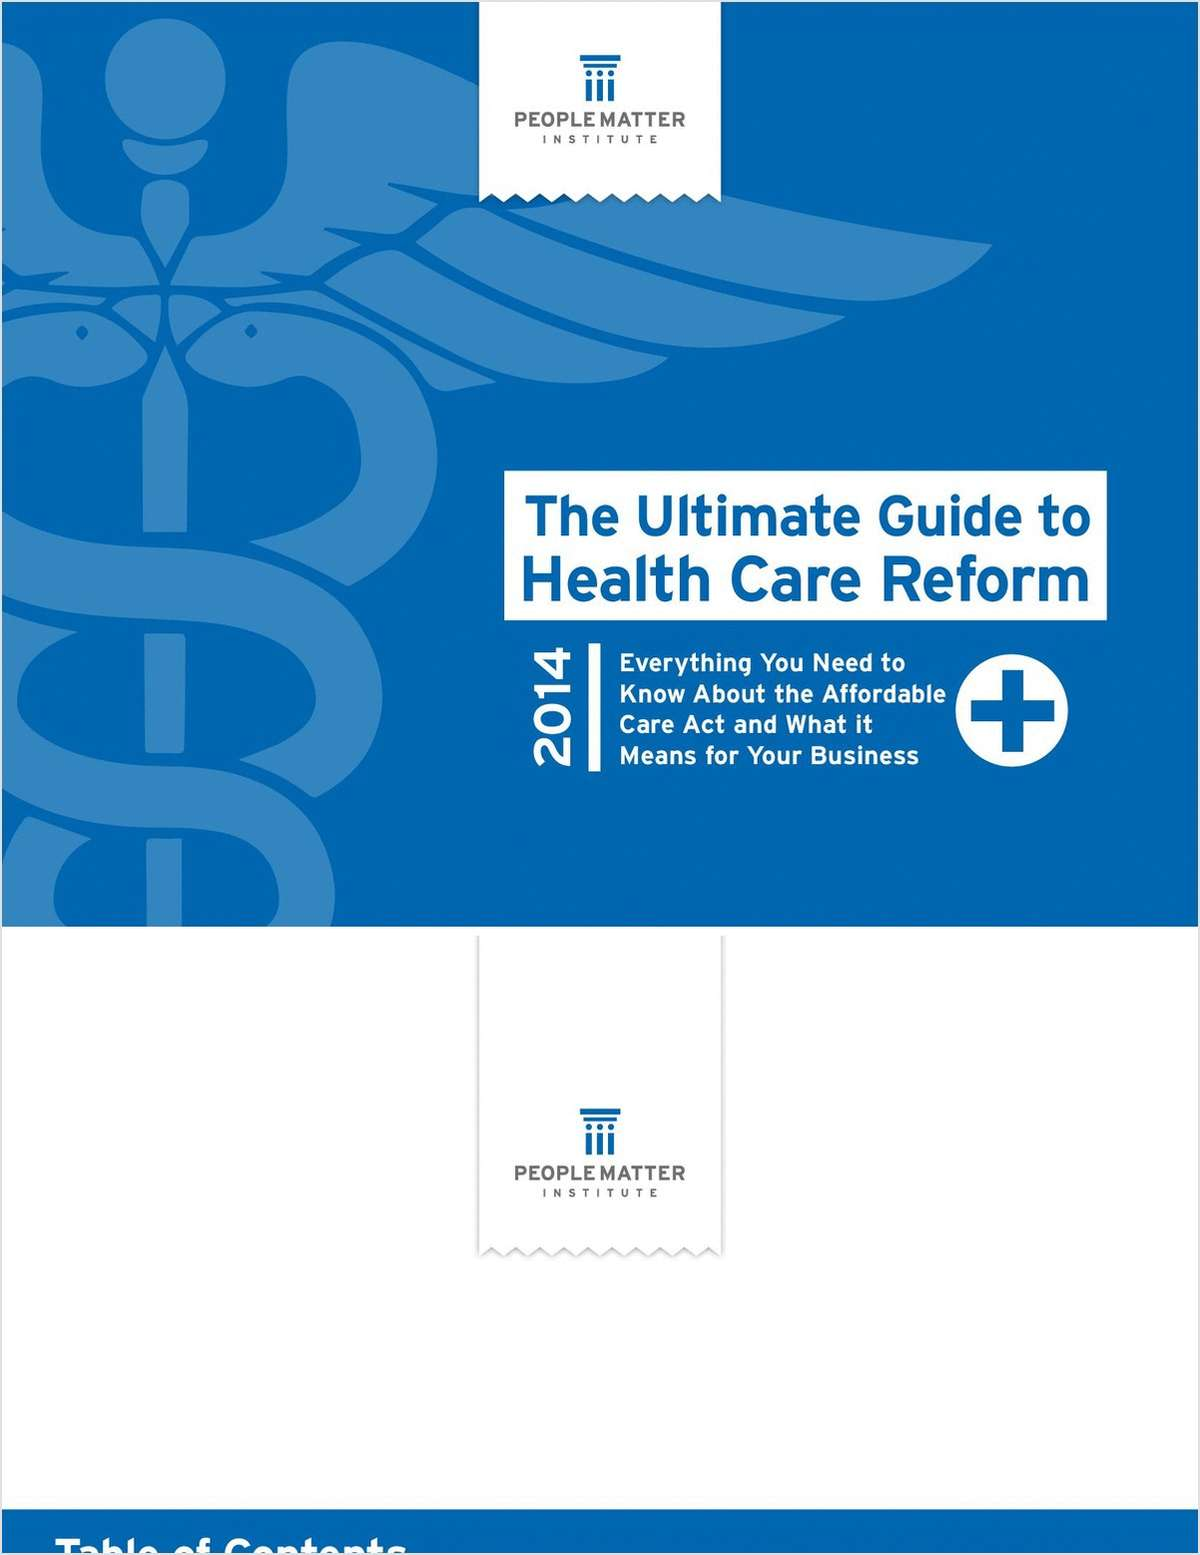 The Ultimate Guide to Health Care Reform